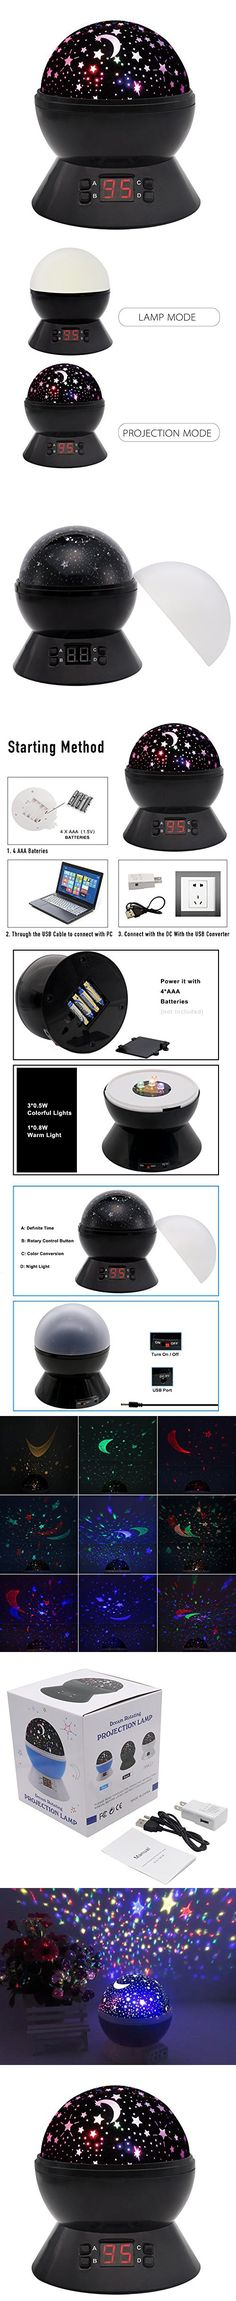 [UPGRADE] MOKOQI Modern Rotating Moon Sky Projection LED Night Lights Toys Table Lamps with Timer Shut Off & Color Changing For Baby Girls Boys Bedroom Christmas Gift Baby Nursery Lights (Black)